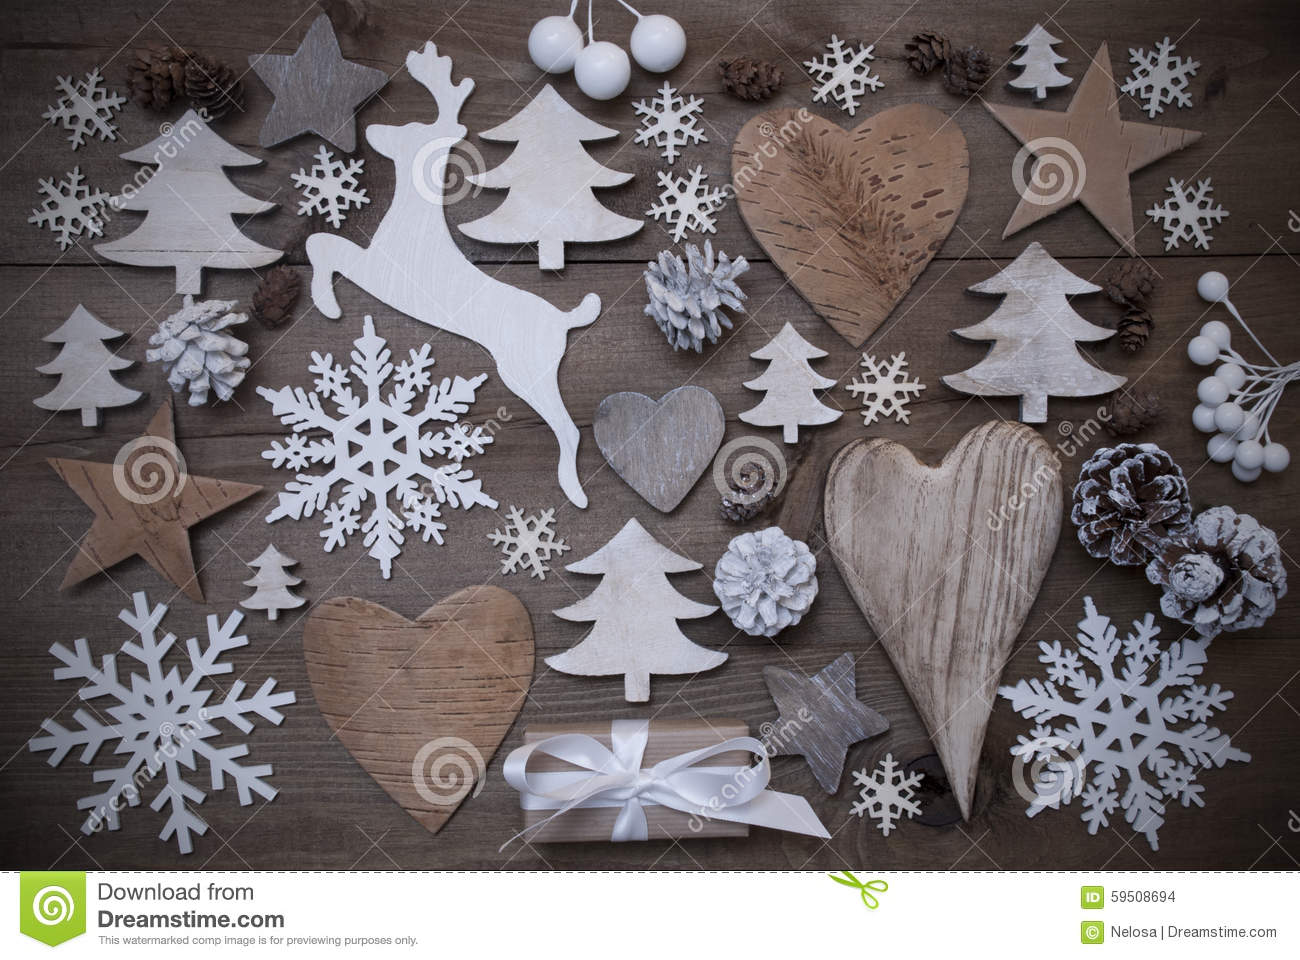 Beaucoup d coration de no l coeur flocons de neige toile pr sent renne photo stock image - Deco d voorgerecht ...